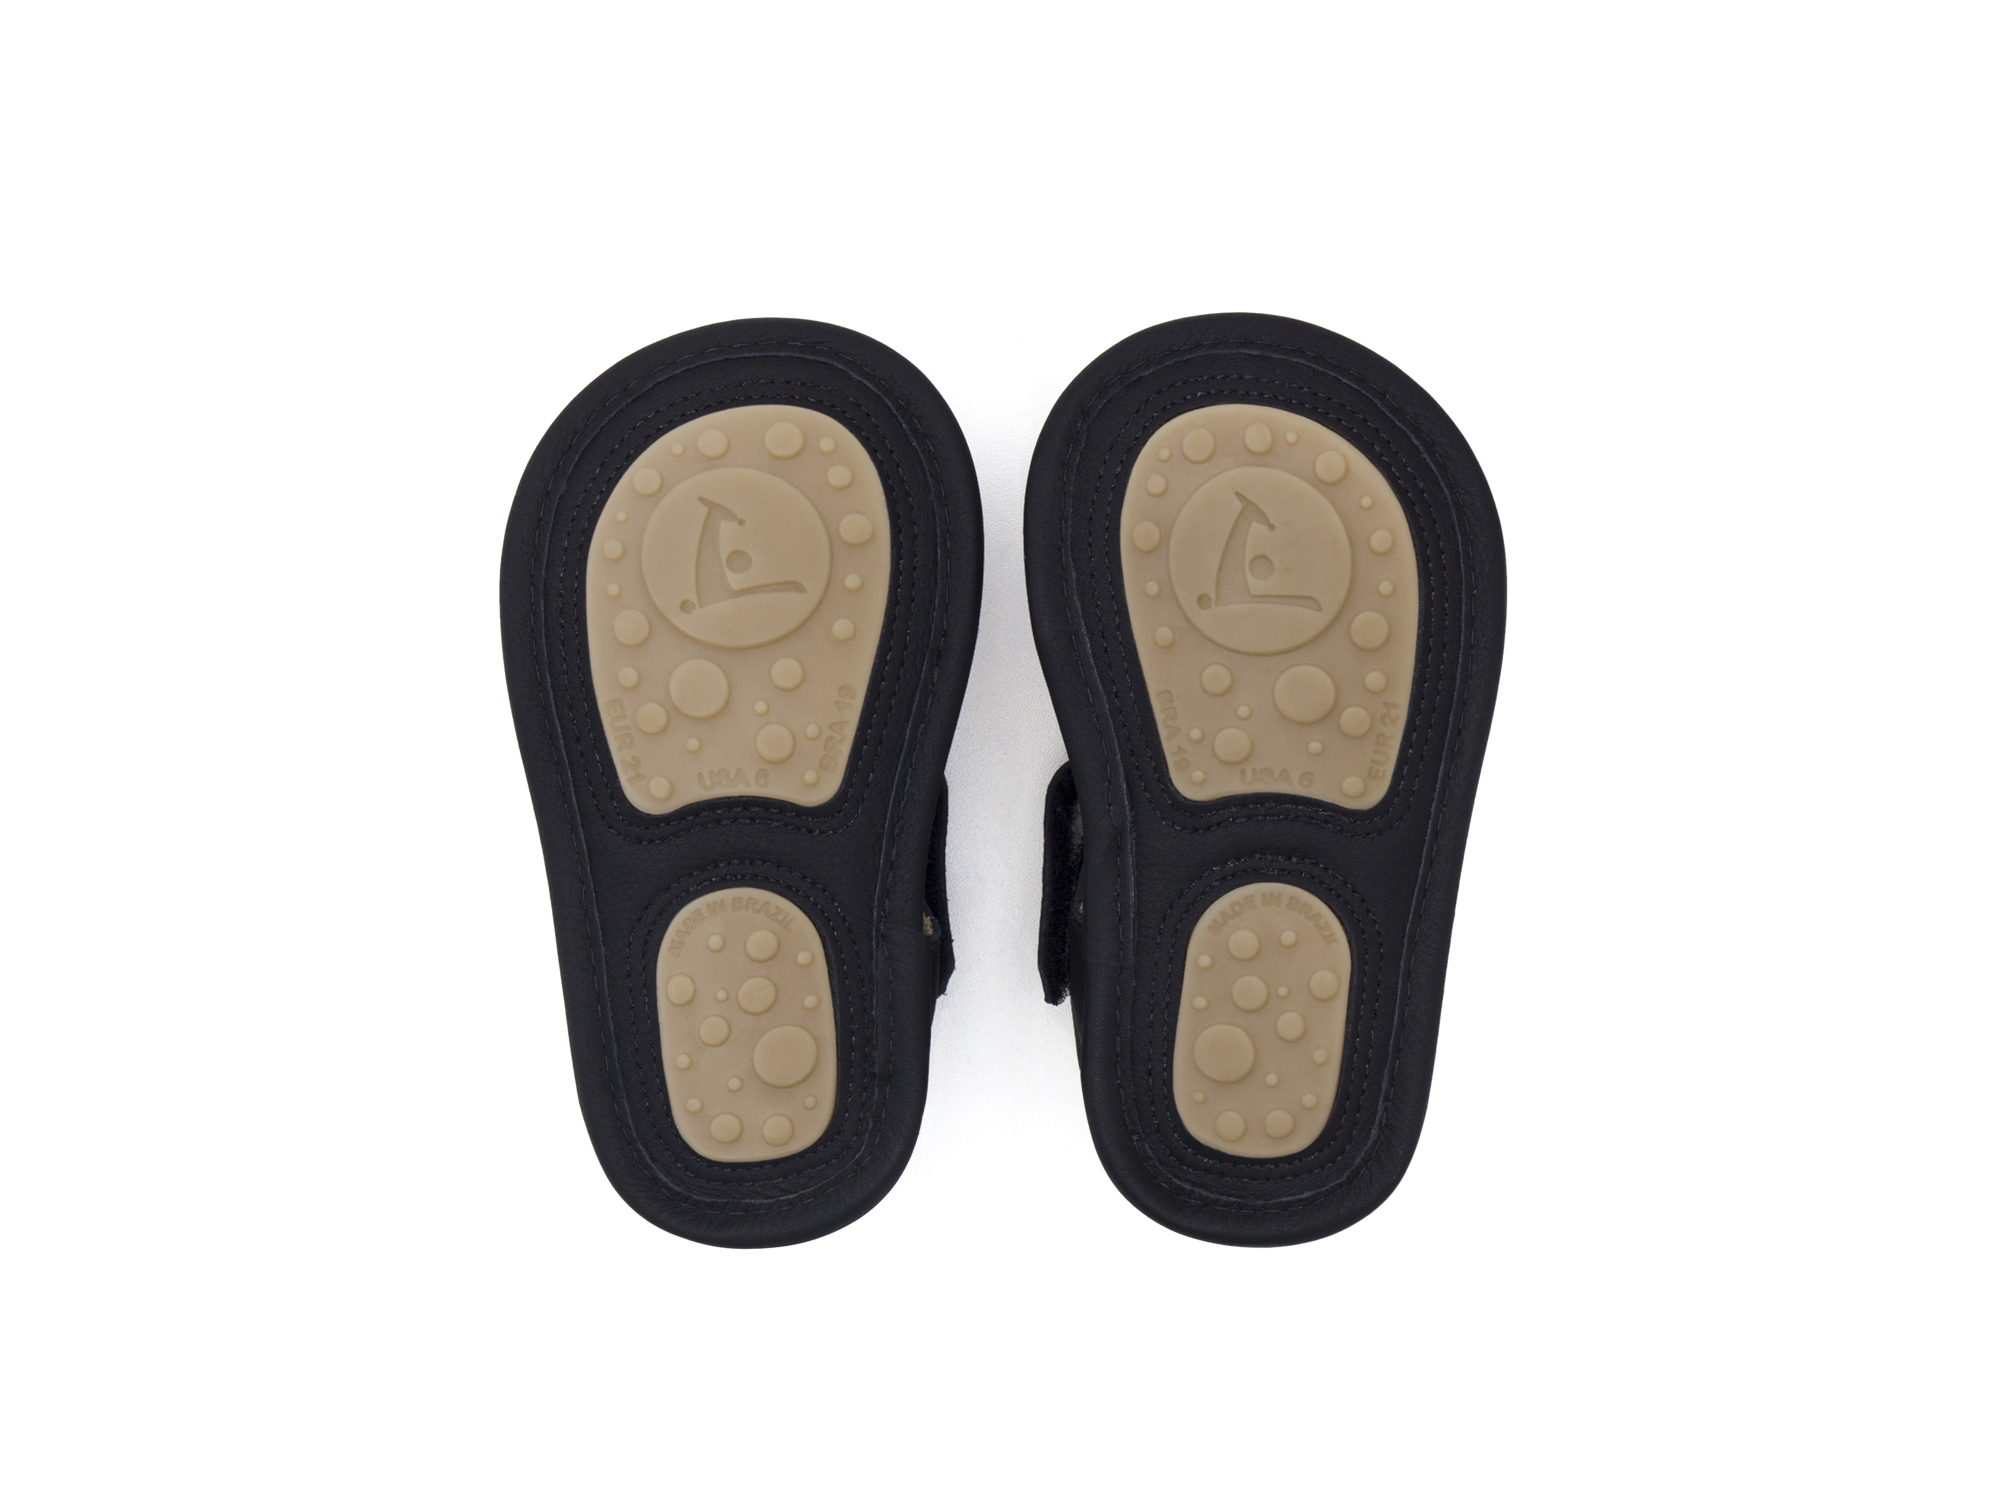 Sandal Folksy Black/ Tutti Frutti Baby for ages 0 to 2 years - 3